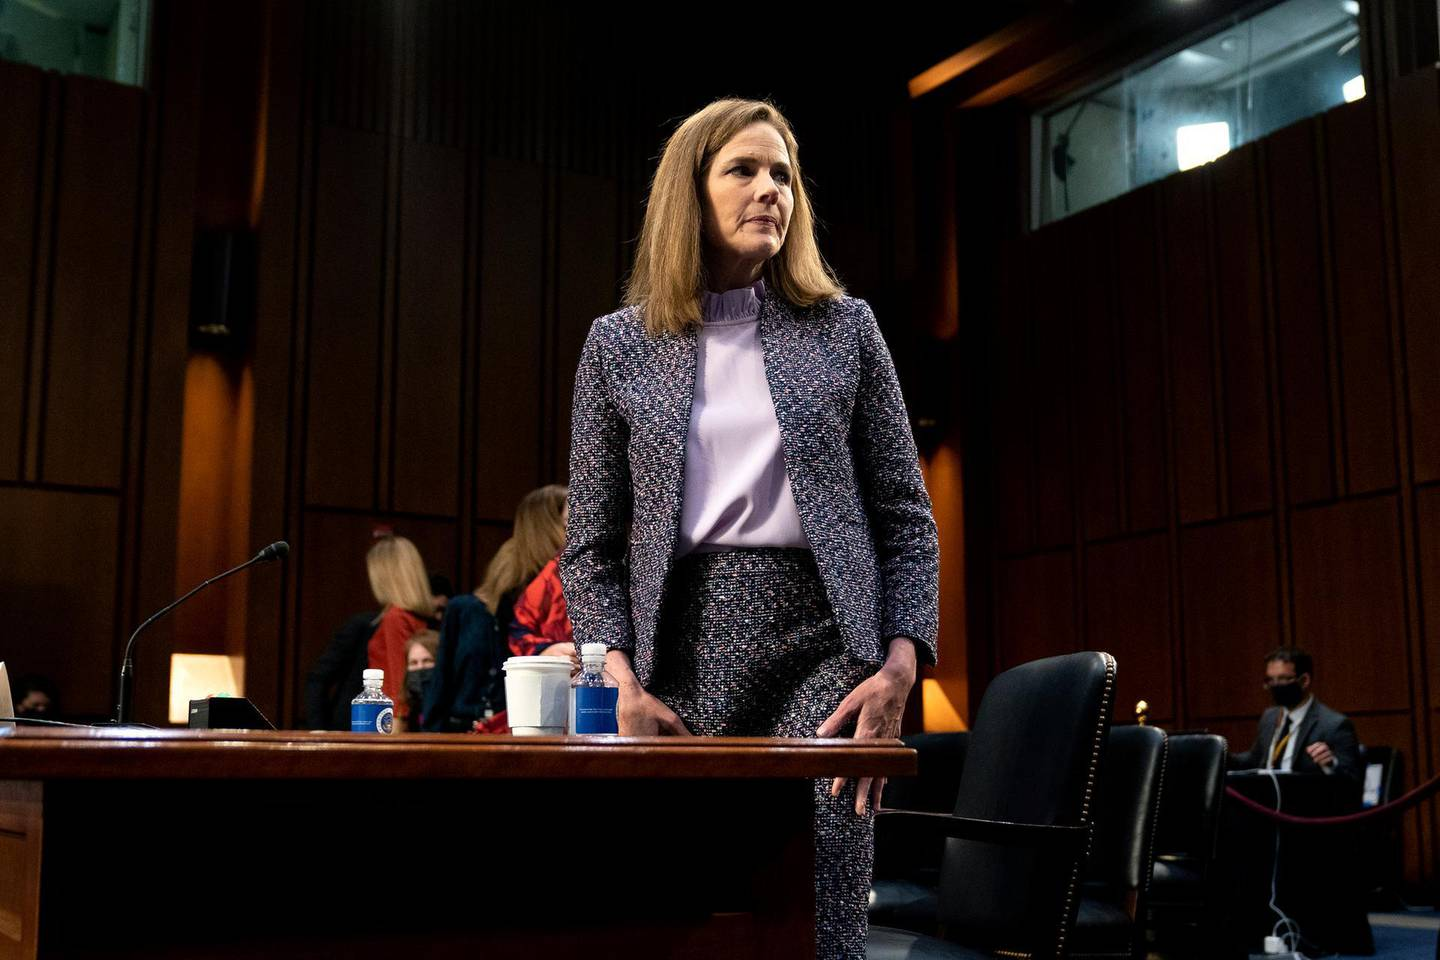 """FILE - In this Wednesday, Oct. 14, 2020 file photo, Supreme Court nominee Amy Coney Barrett departs during a break in a confirmation hearing before the Senate Judiciary Committee on Capitol Hill in Washington. On Friday, Oct. 16, 2020, The Associated Press reported on stories circulating online incorrectly asserting that when reporters asked President Donald Trump why he nominated Barrett to replace the late Supreme Court Justice Ruth Bader Ginsburg, he said Barrett is """"much better looking"""" than other women who have appeared on the court and """"if people are more attractive, they get a fantastic amount of respect."""" There is no evidence Trump made these comments. (Stefani Reynolds/Pool via AP)"""